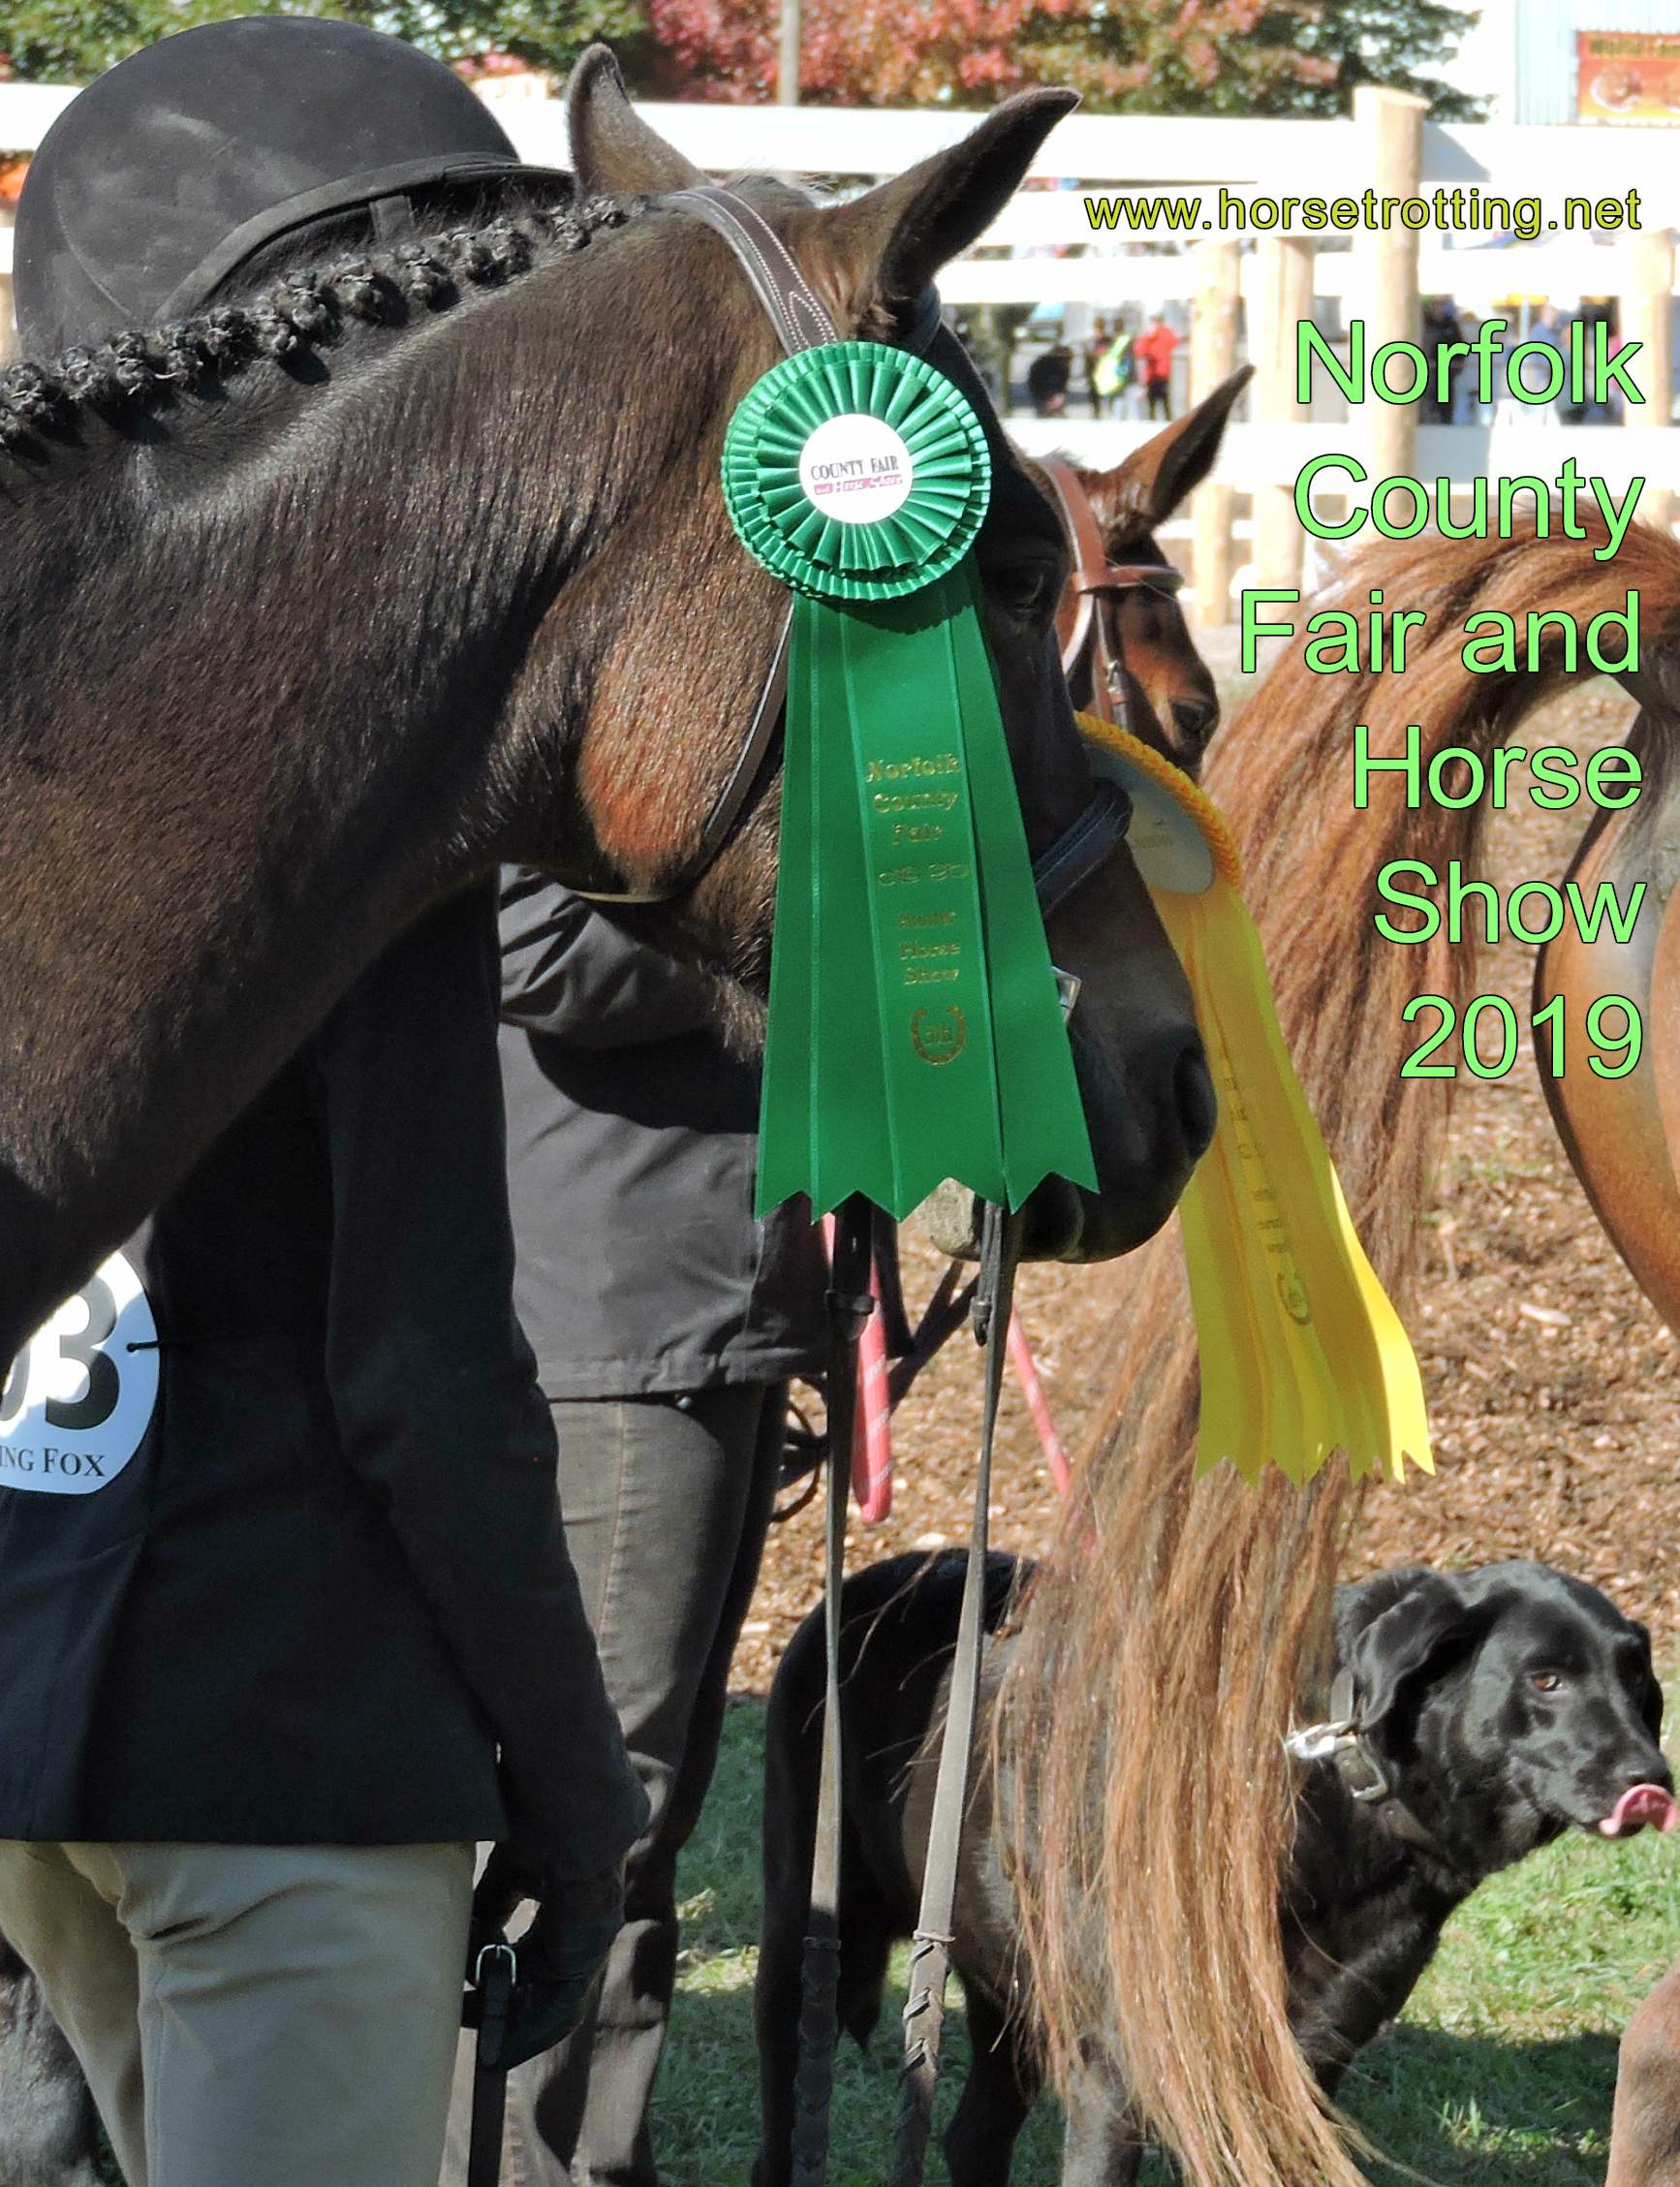 Travel Simcoe, ON: Norfolk County Fair and Horse Show in full stride